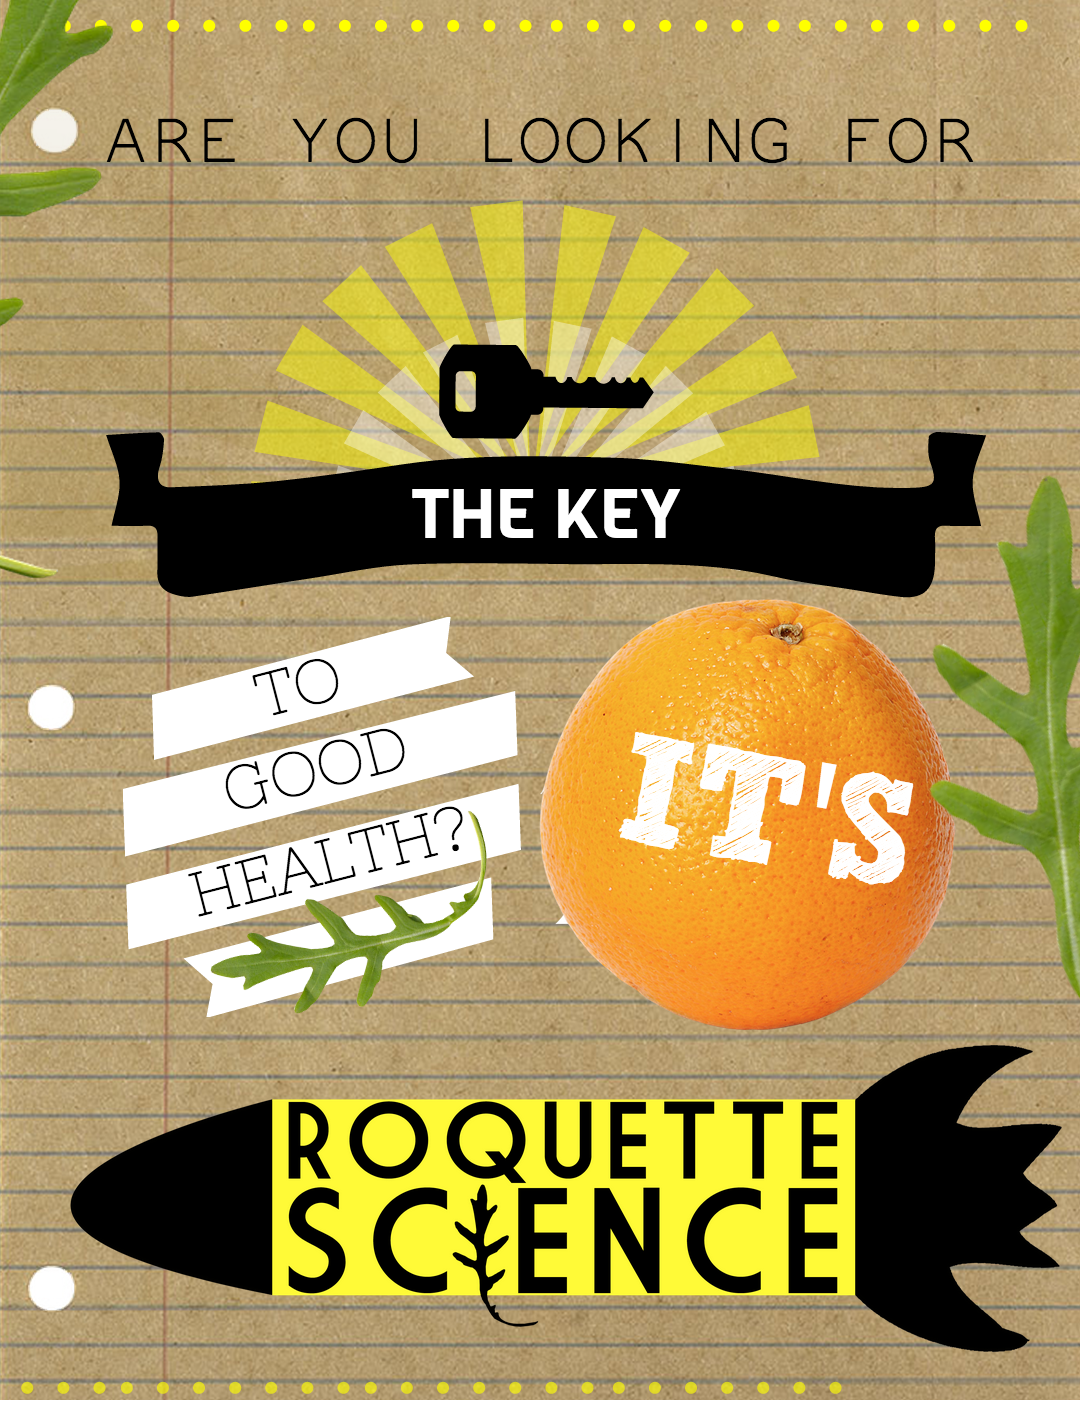 Roquette Science_flyer1a.png